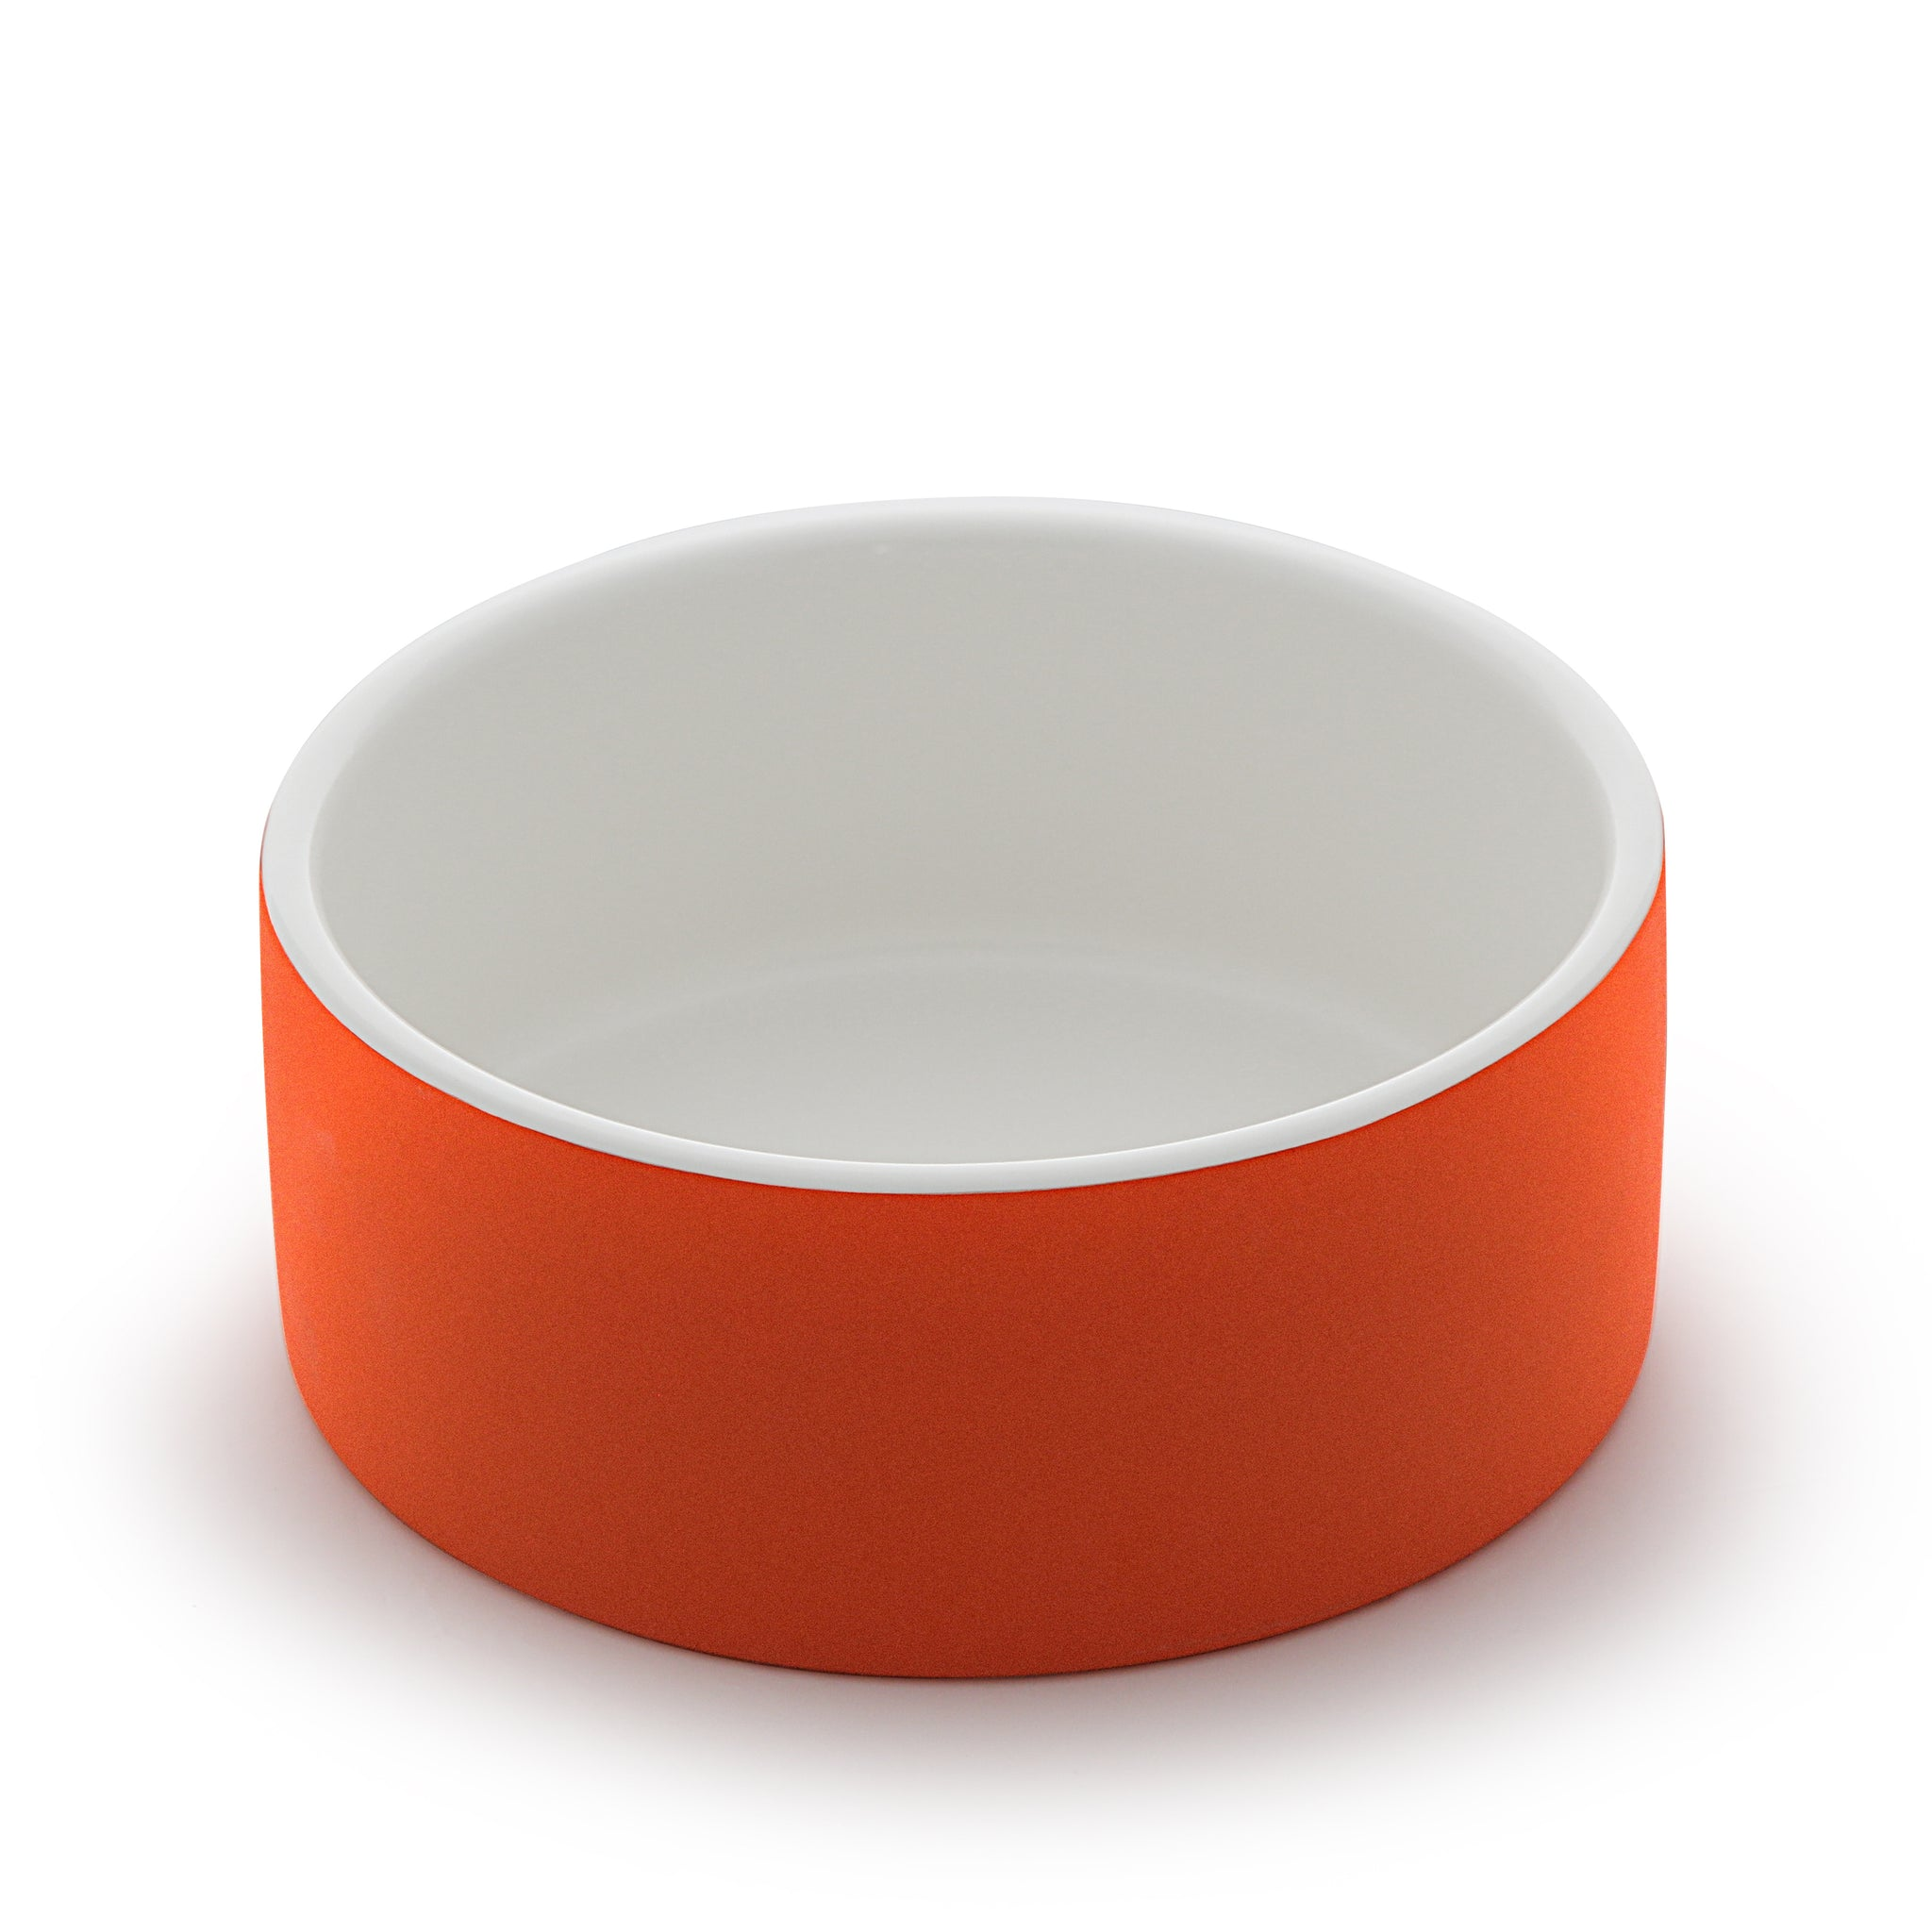 PAIKKA Happy Pet Project water bowl for pet, dog